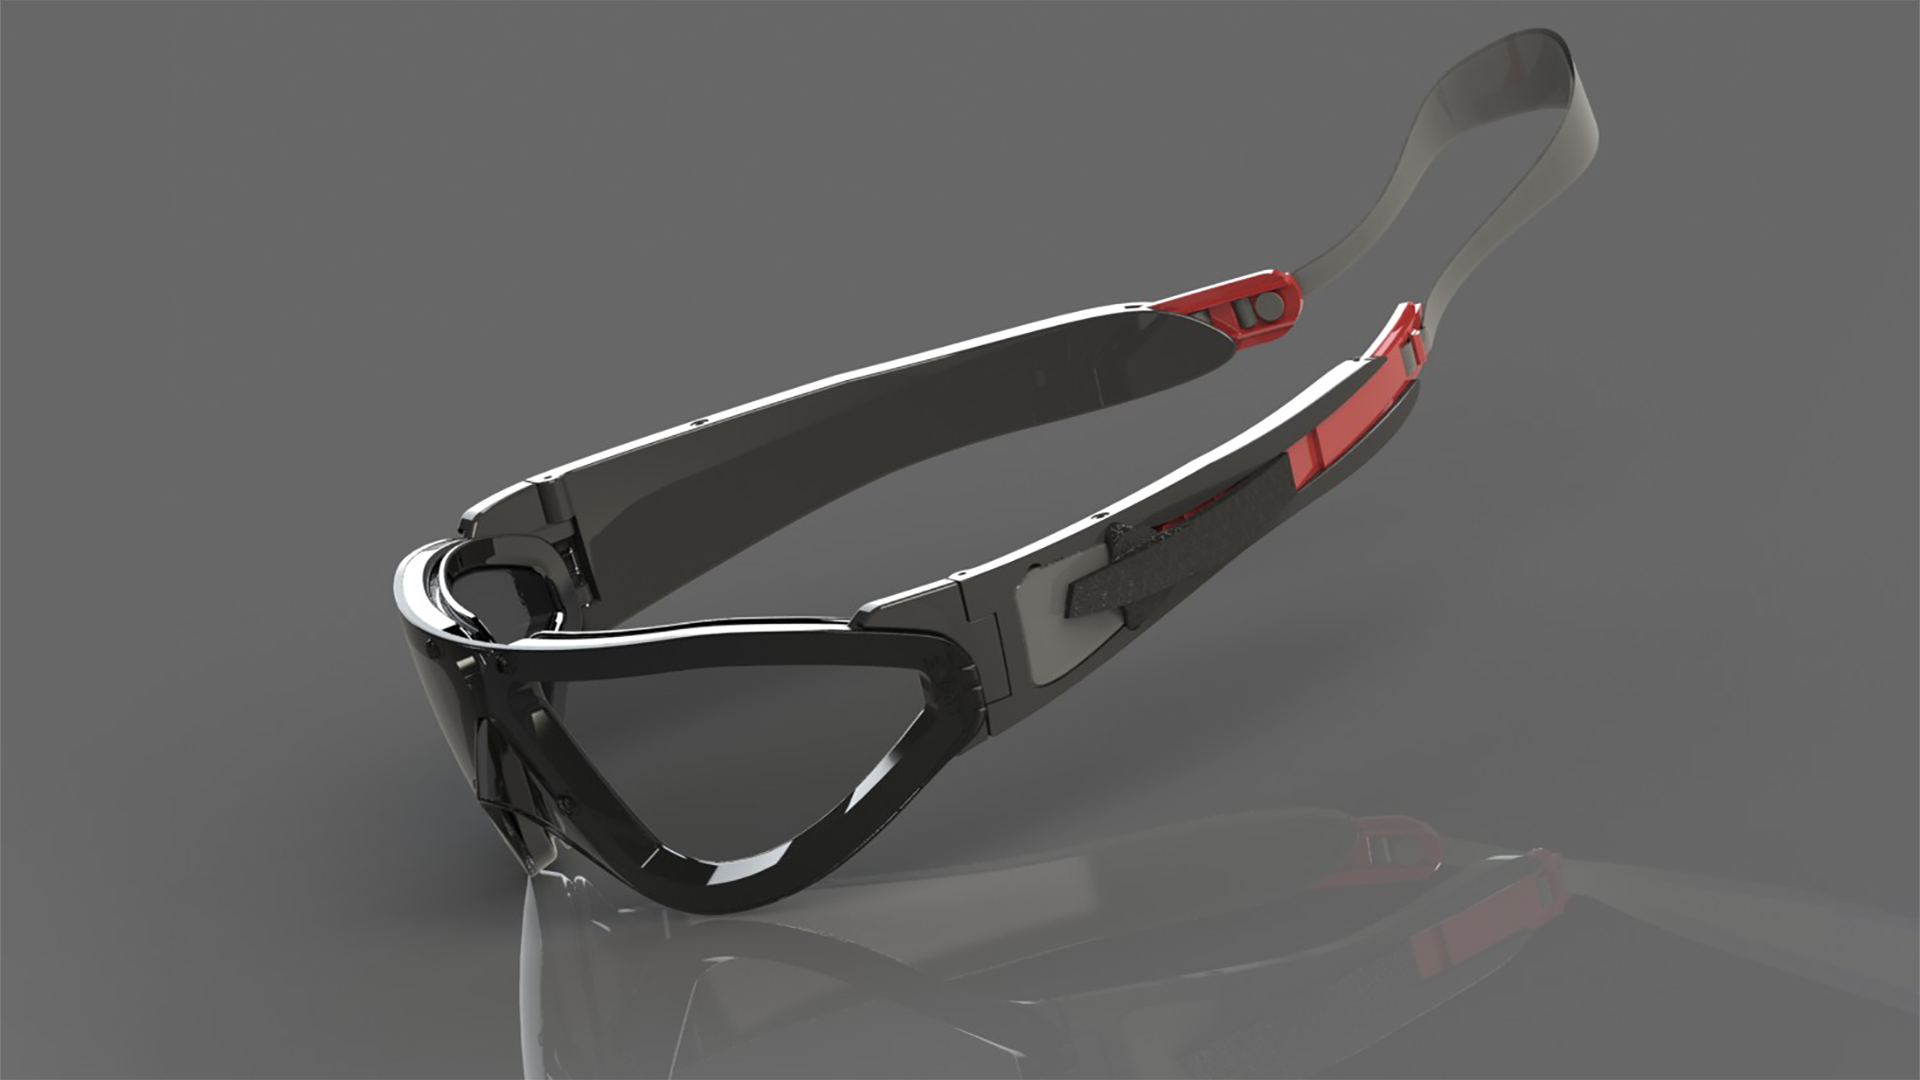 3d render of sealz, the rapid transition glasses